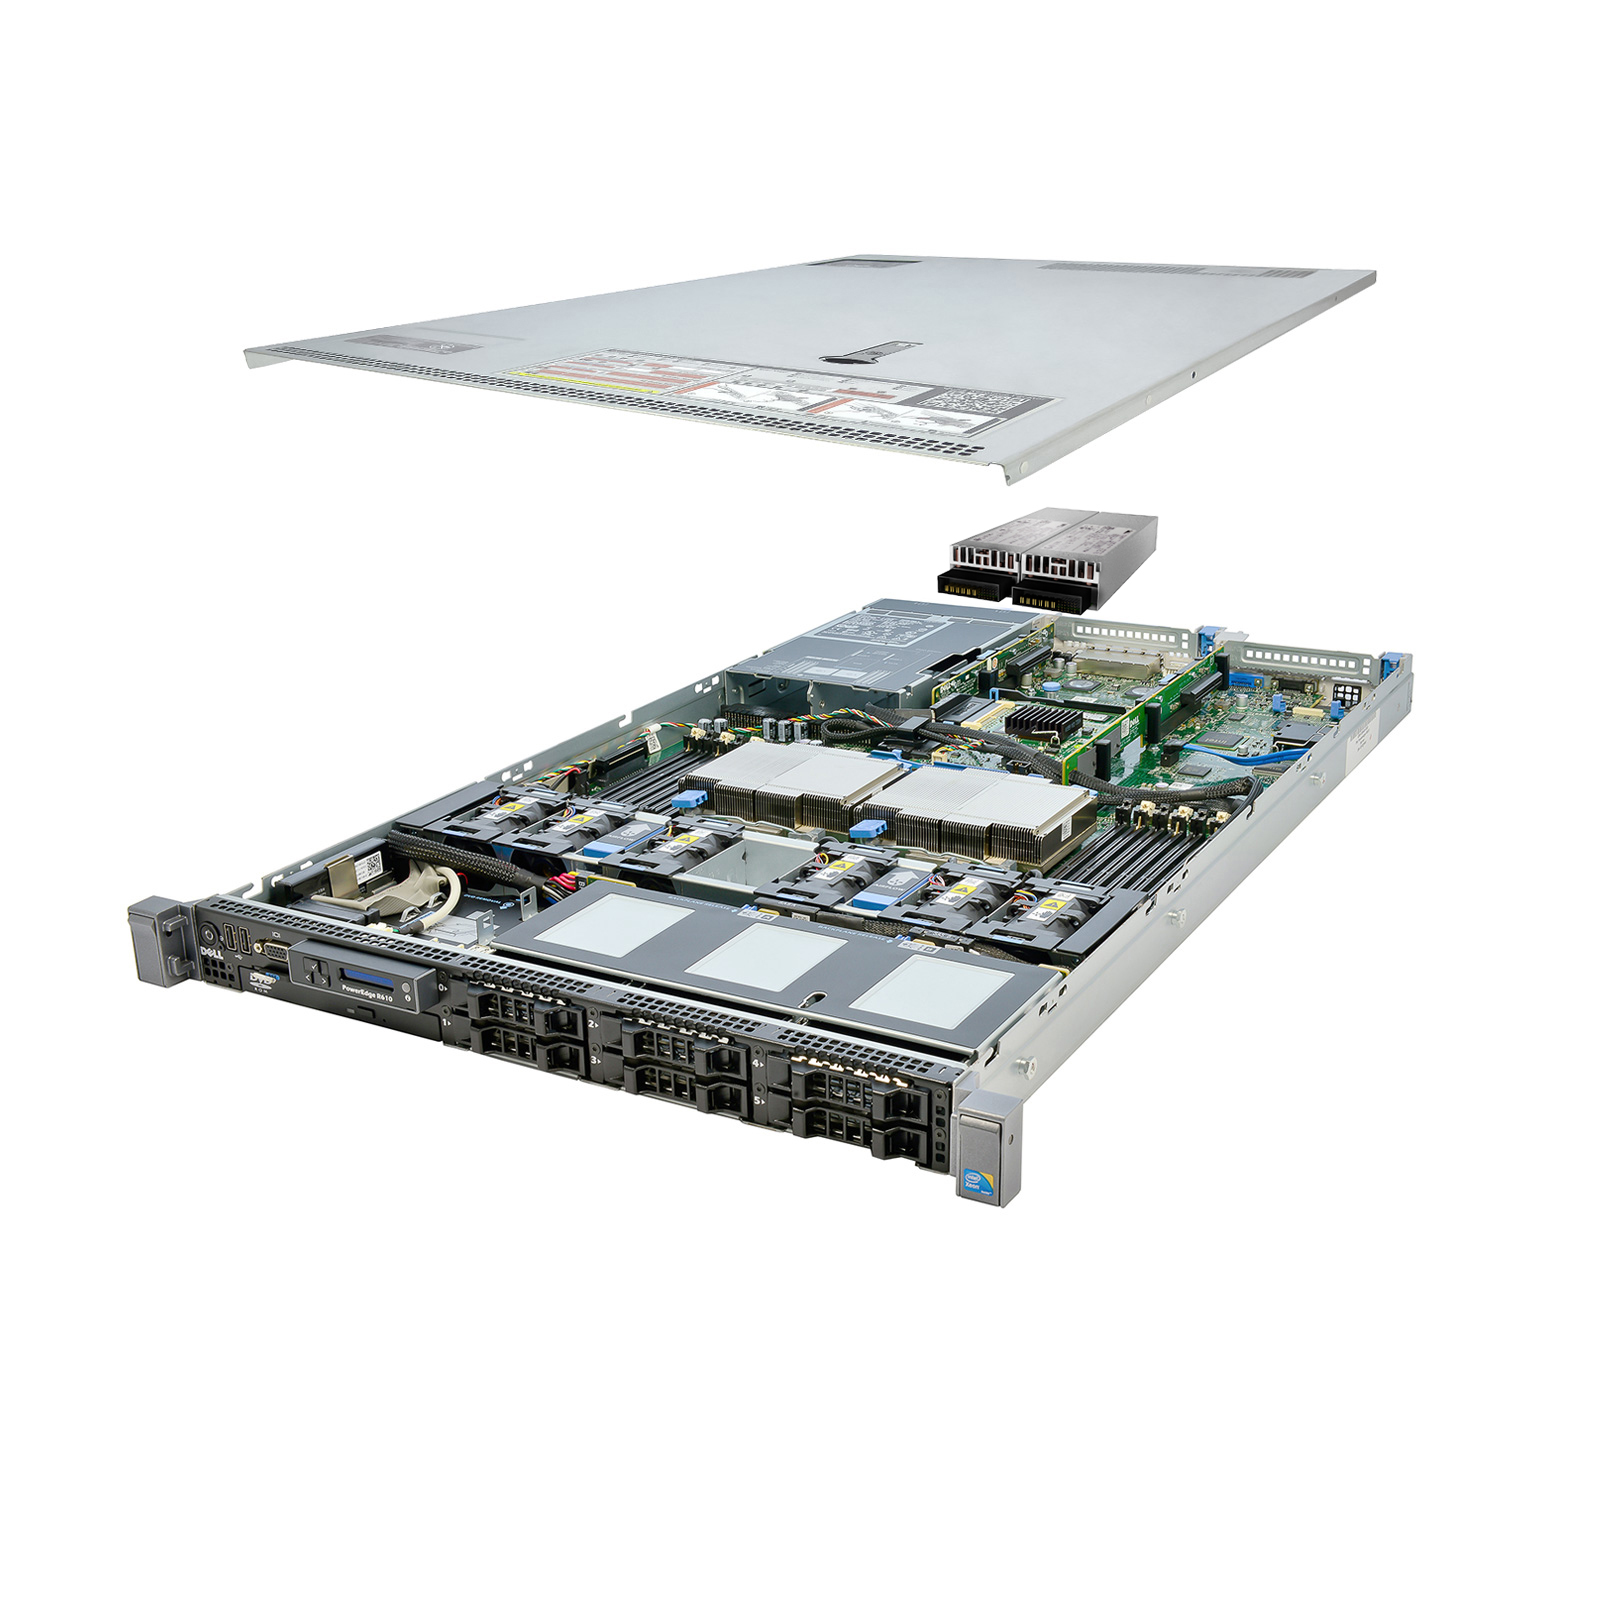 Details about Dell PowerEdge R610 Server 2x 3 06Ghz X5675 6C 64GB 2x 500GB  High-End